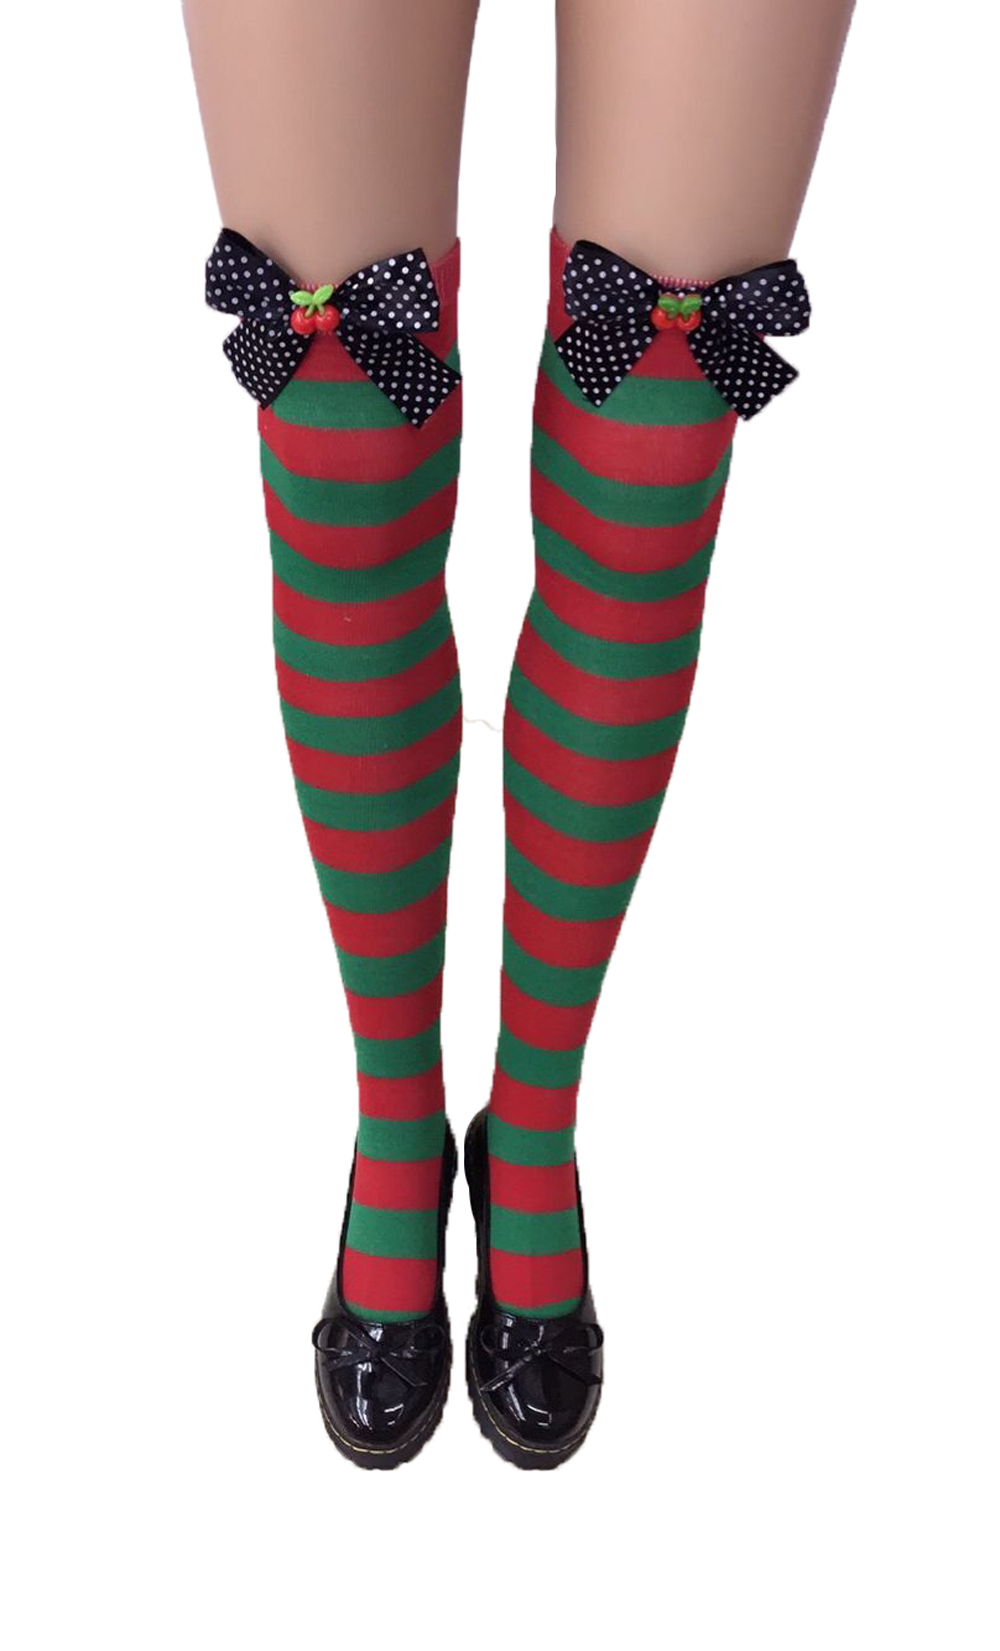 F8192-1 Nylon Cute Sexy Striped Stockings For Halloween